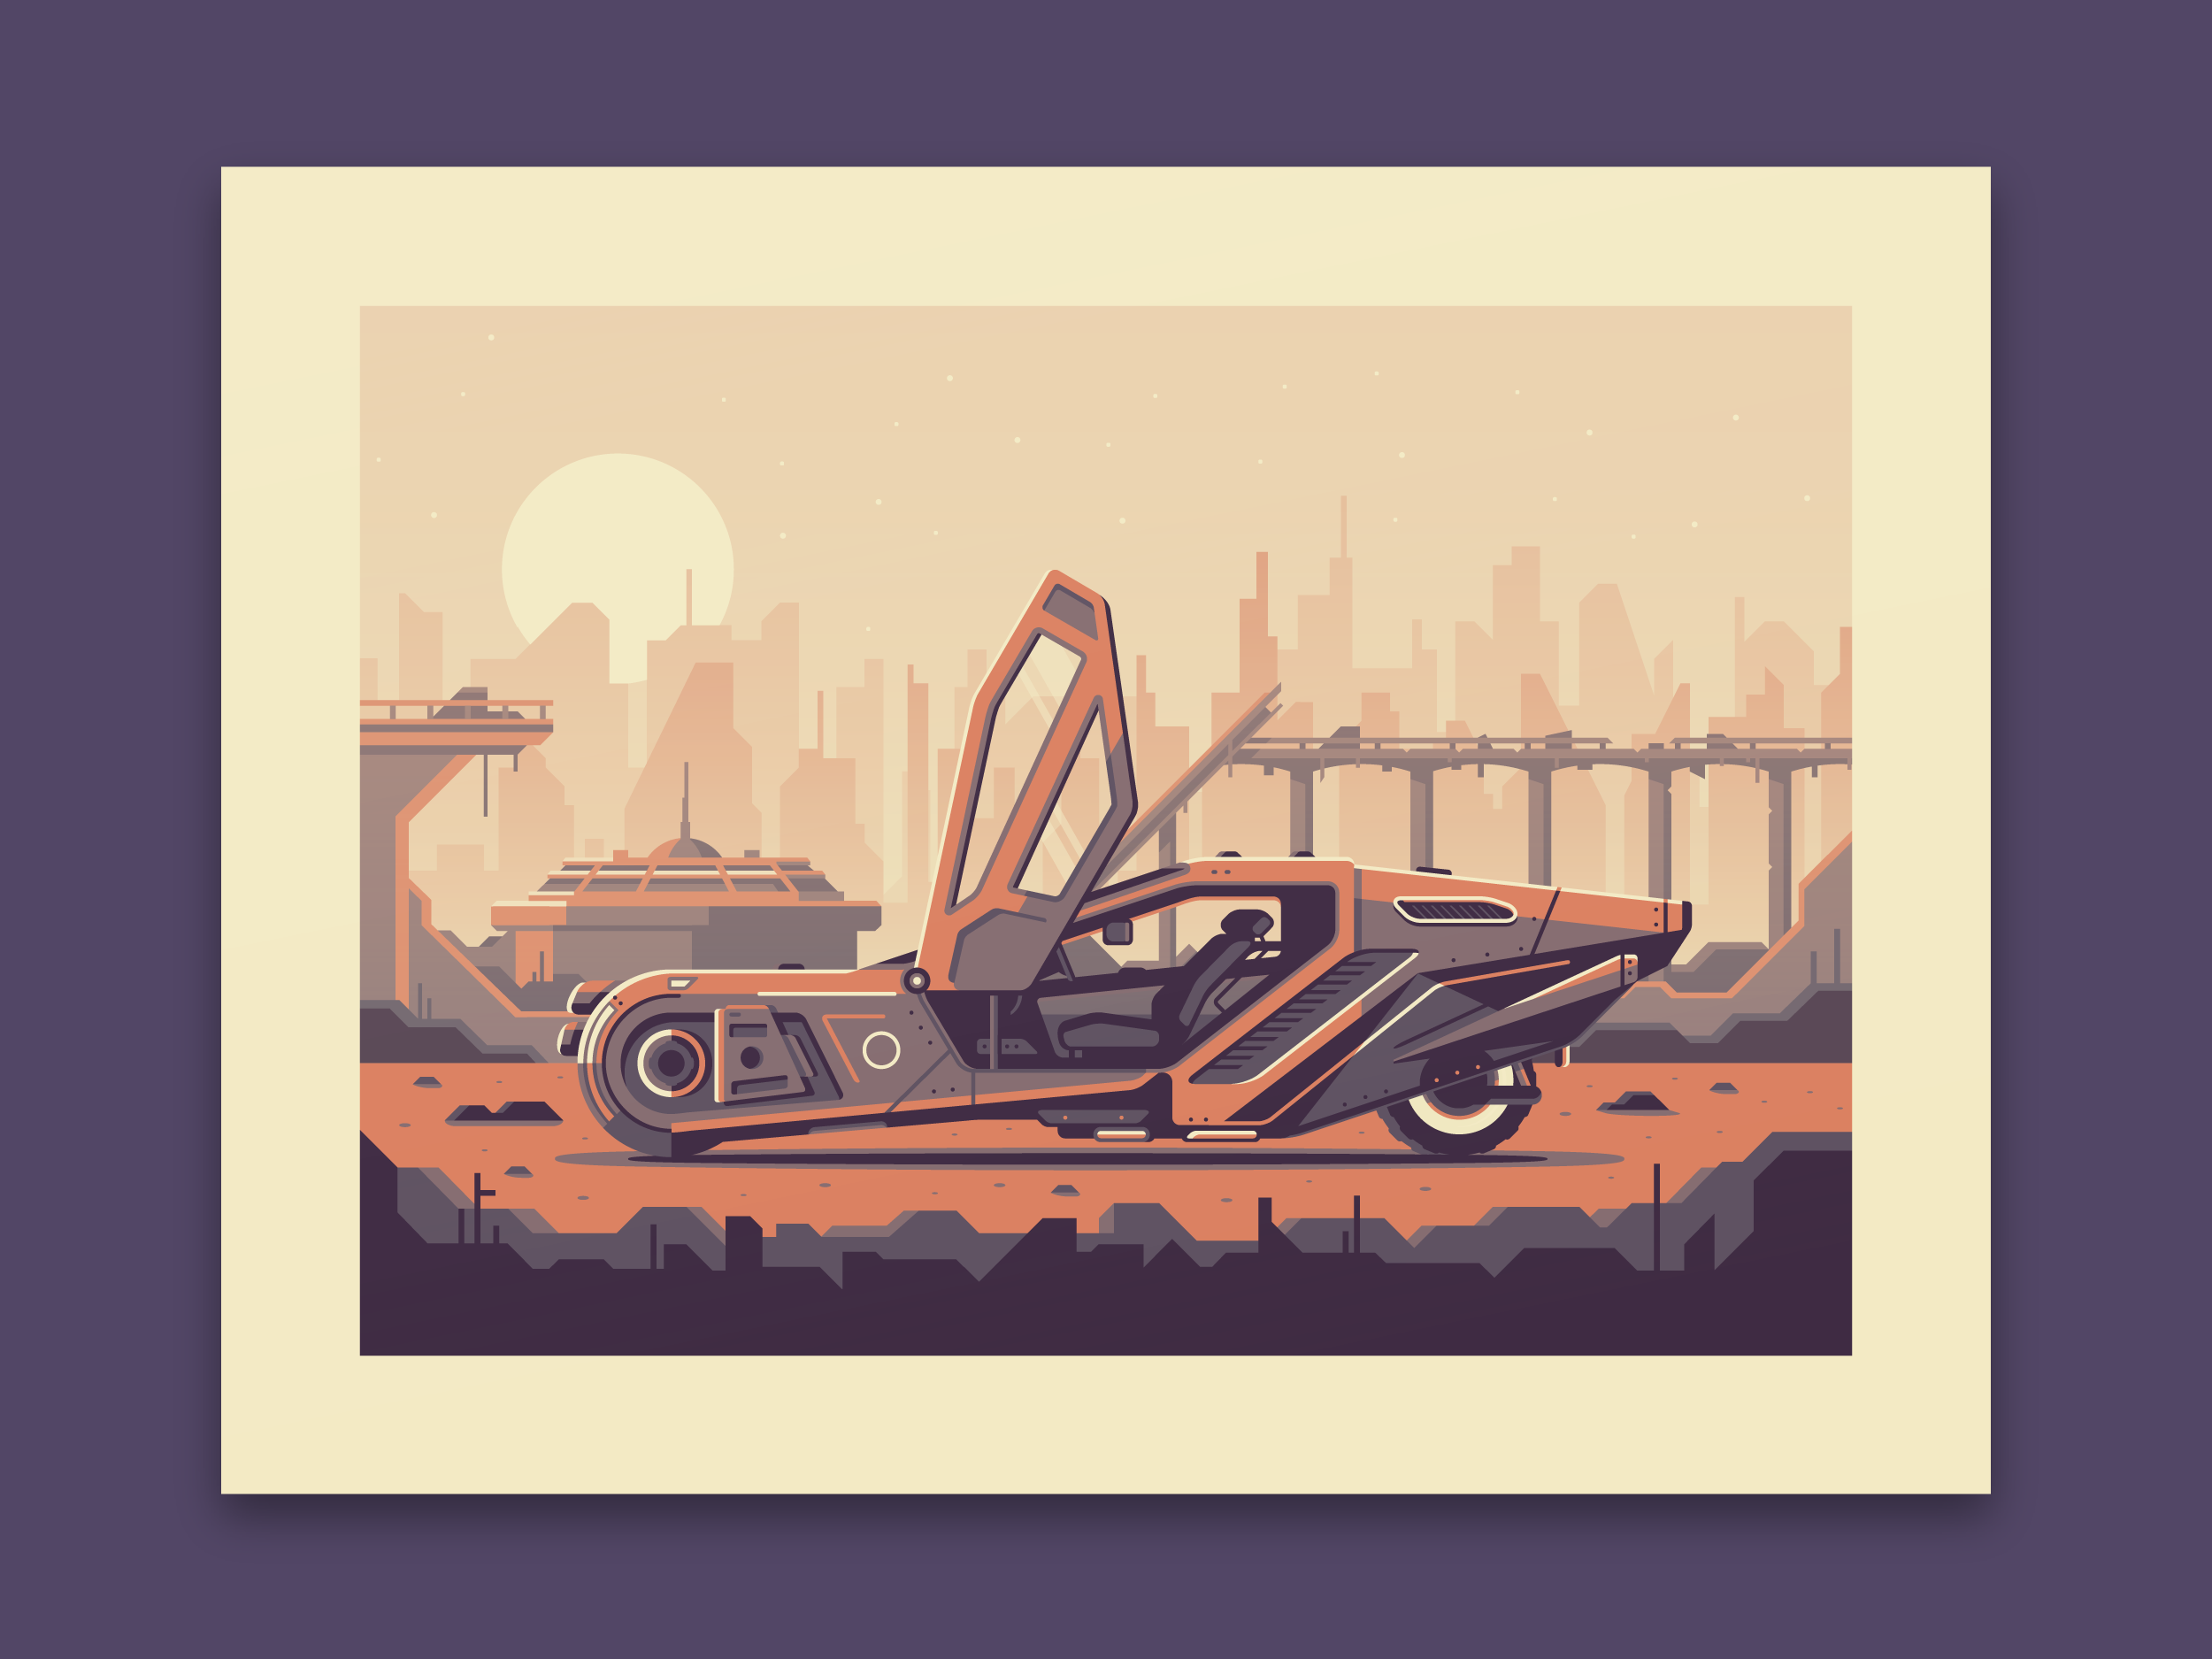 Bladerunner 2049 art print by Canopy Design and Illustration